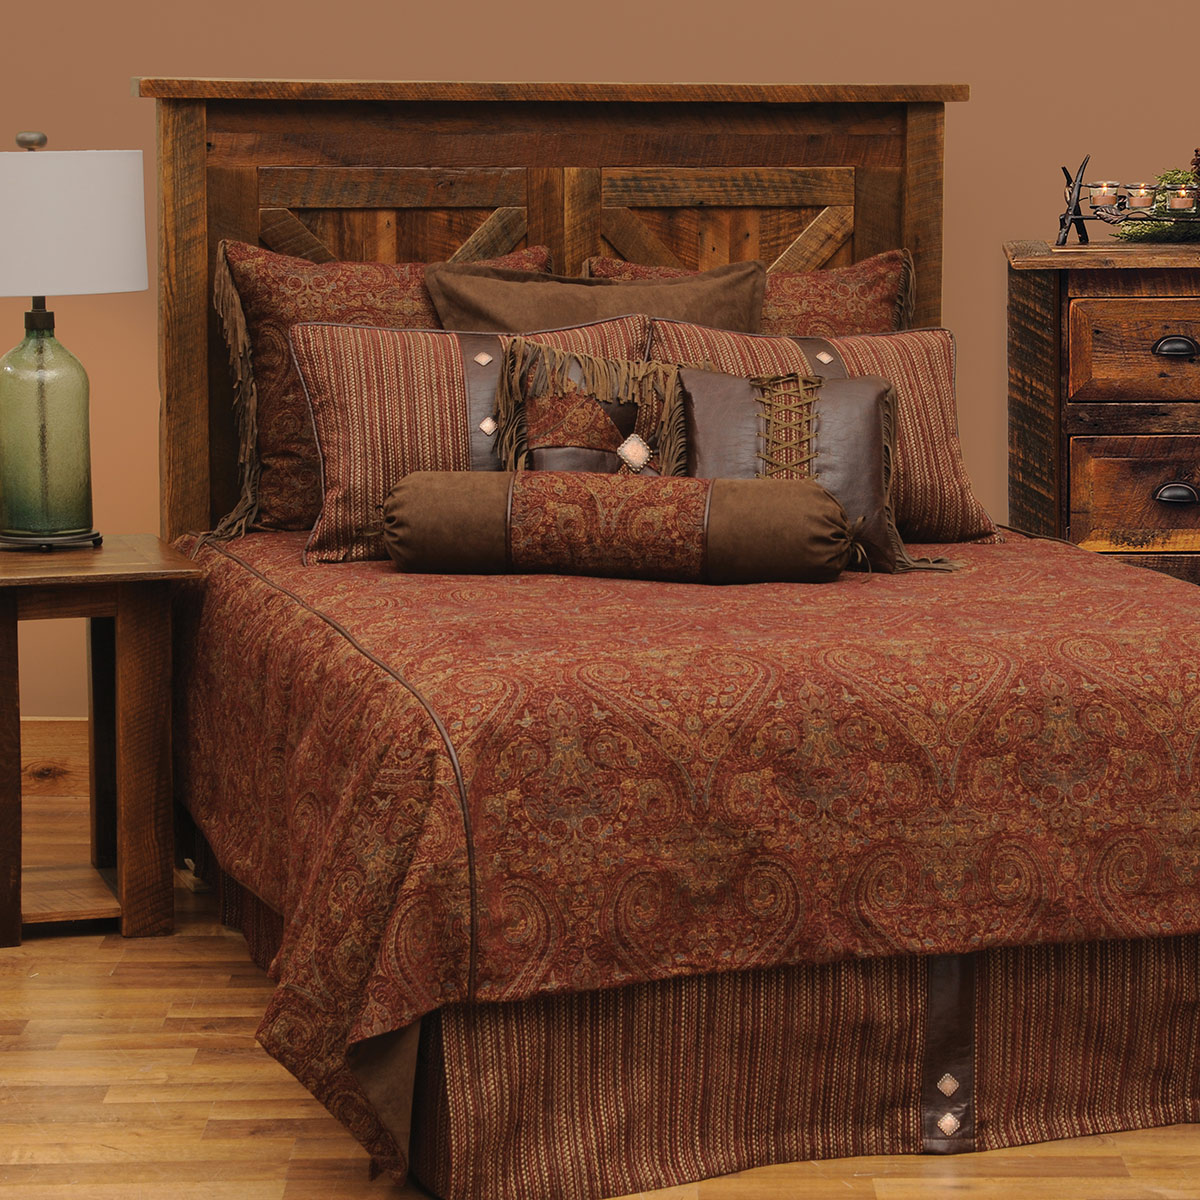 Milady II Deluxe Bed Set - Full